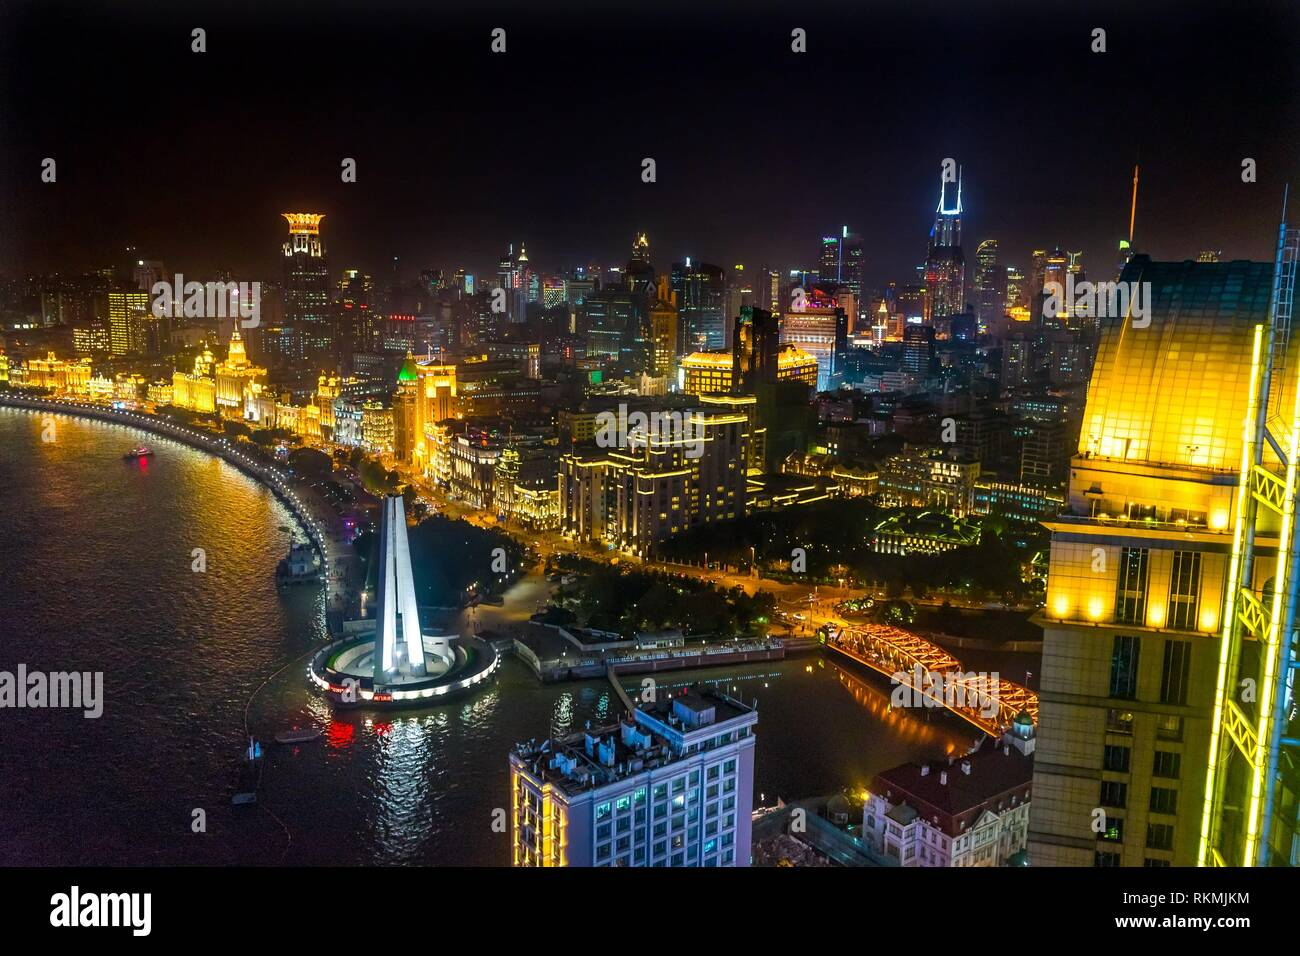 Waibaidu Bridge Monument to People's Heroes Bund Shanghai China Night Shot One of the most famous places in Shanghai and China. Stock Photo